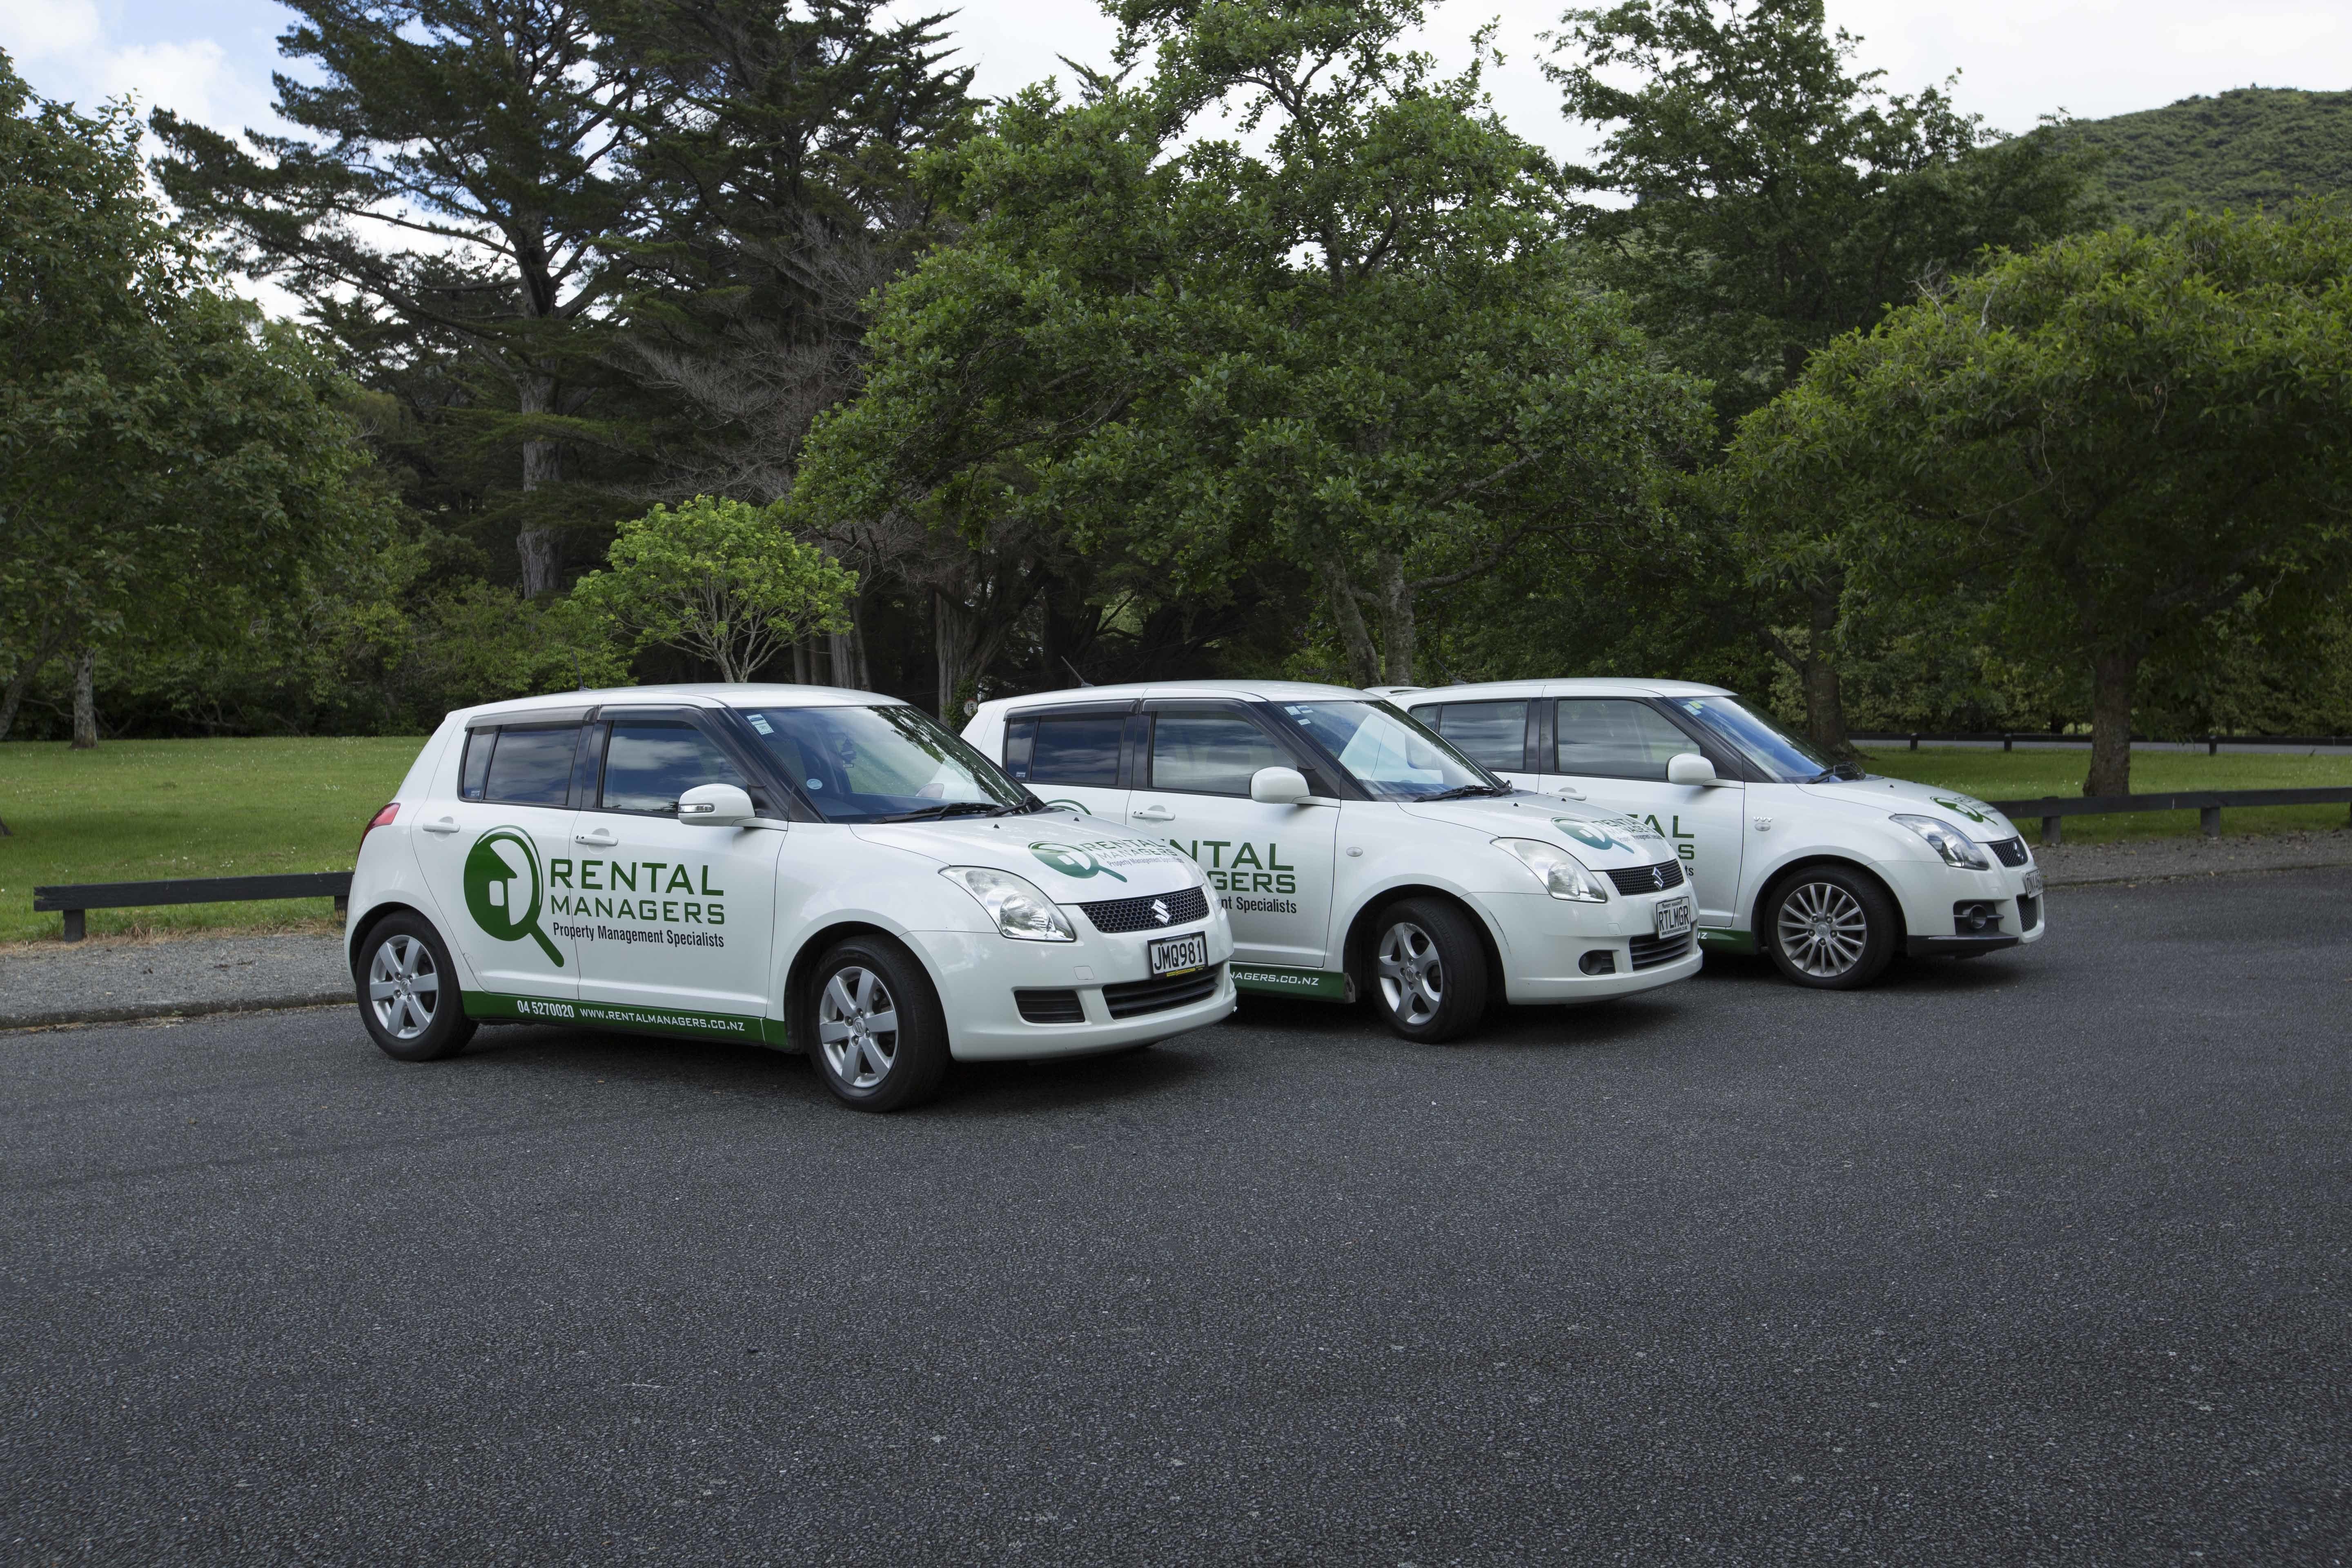 Rental Managers - Wellington